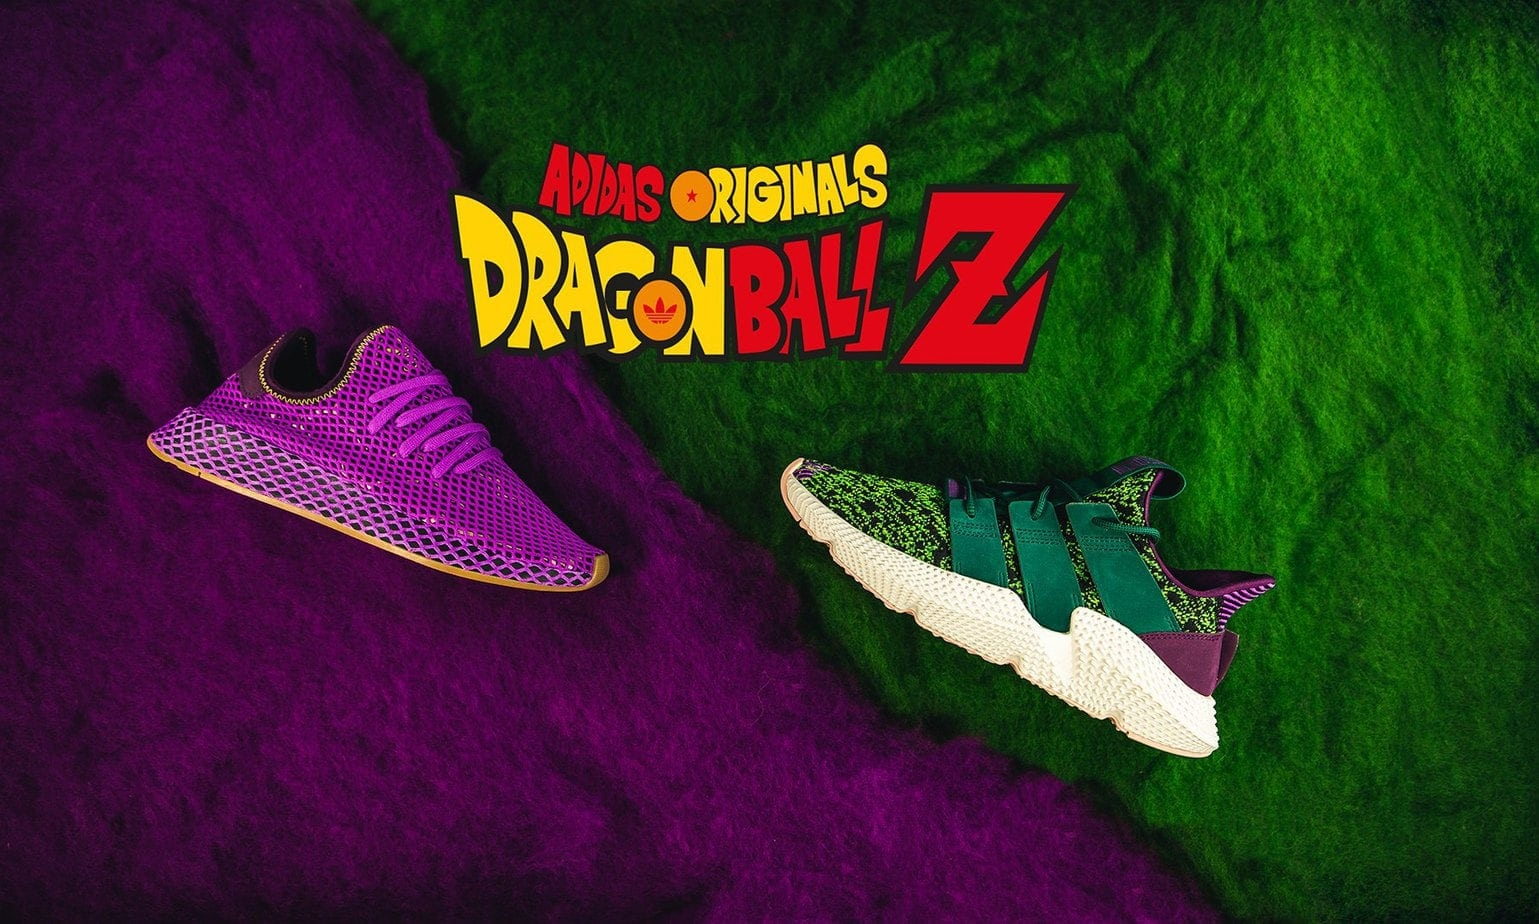 official photos 068f3 209b5 The first round of the Dragon Ball Z x adidas collection is releasing this  Friday, October 26th with the Prophere Cell and Deerupt Son Gohan.